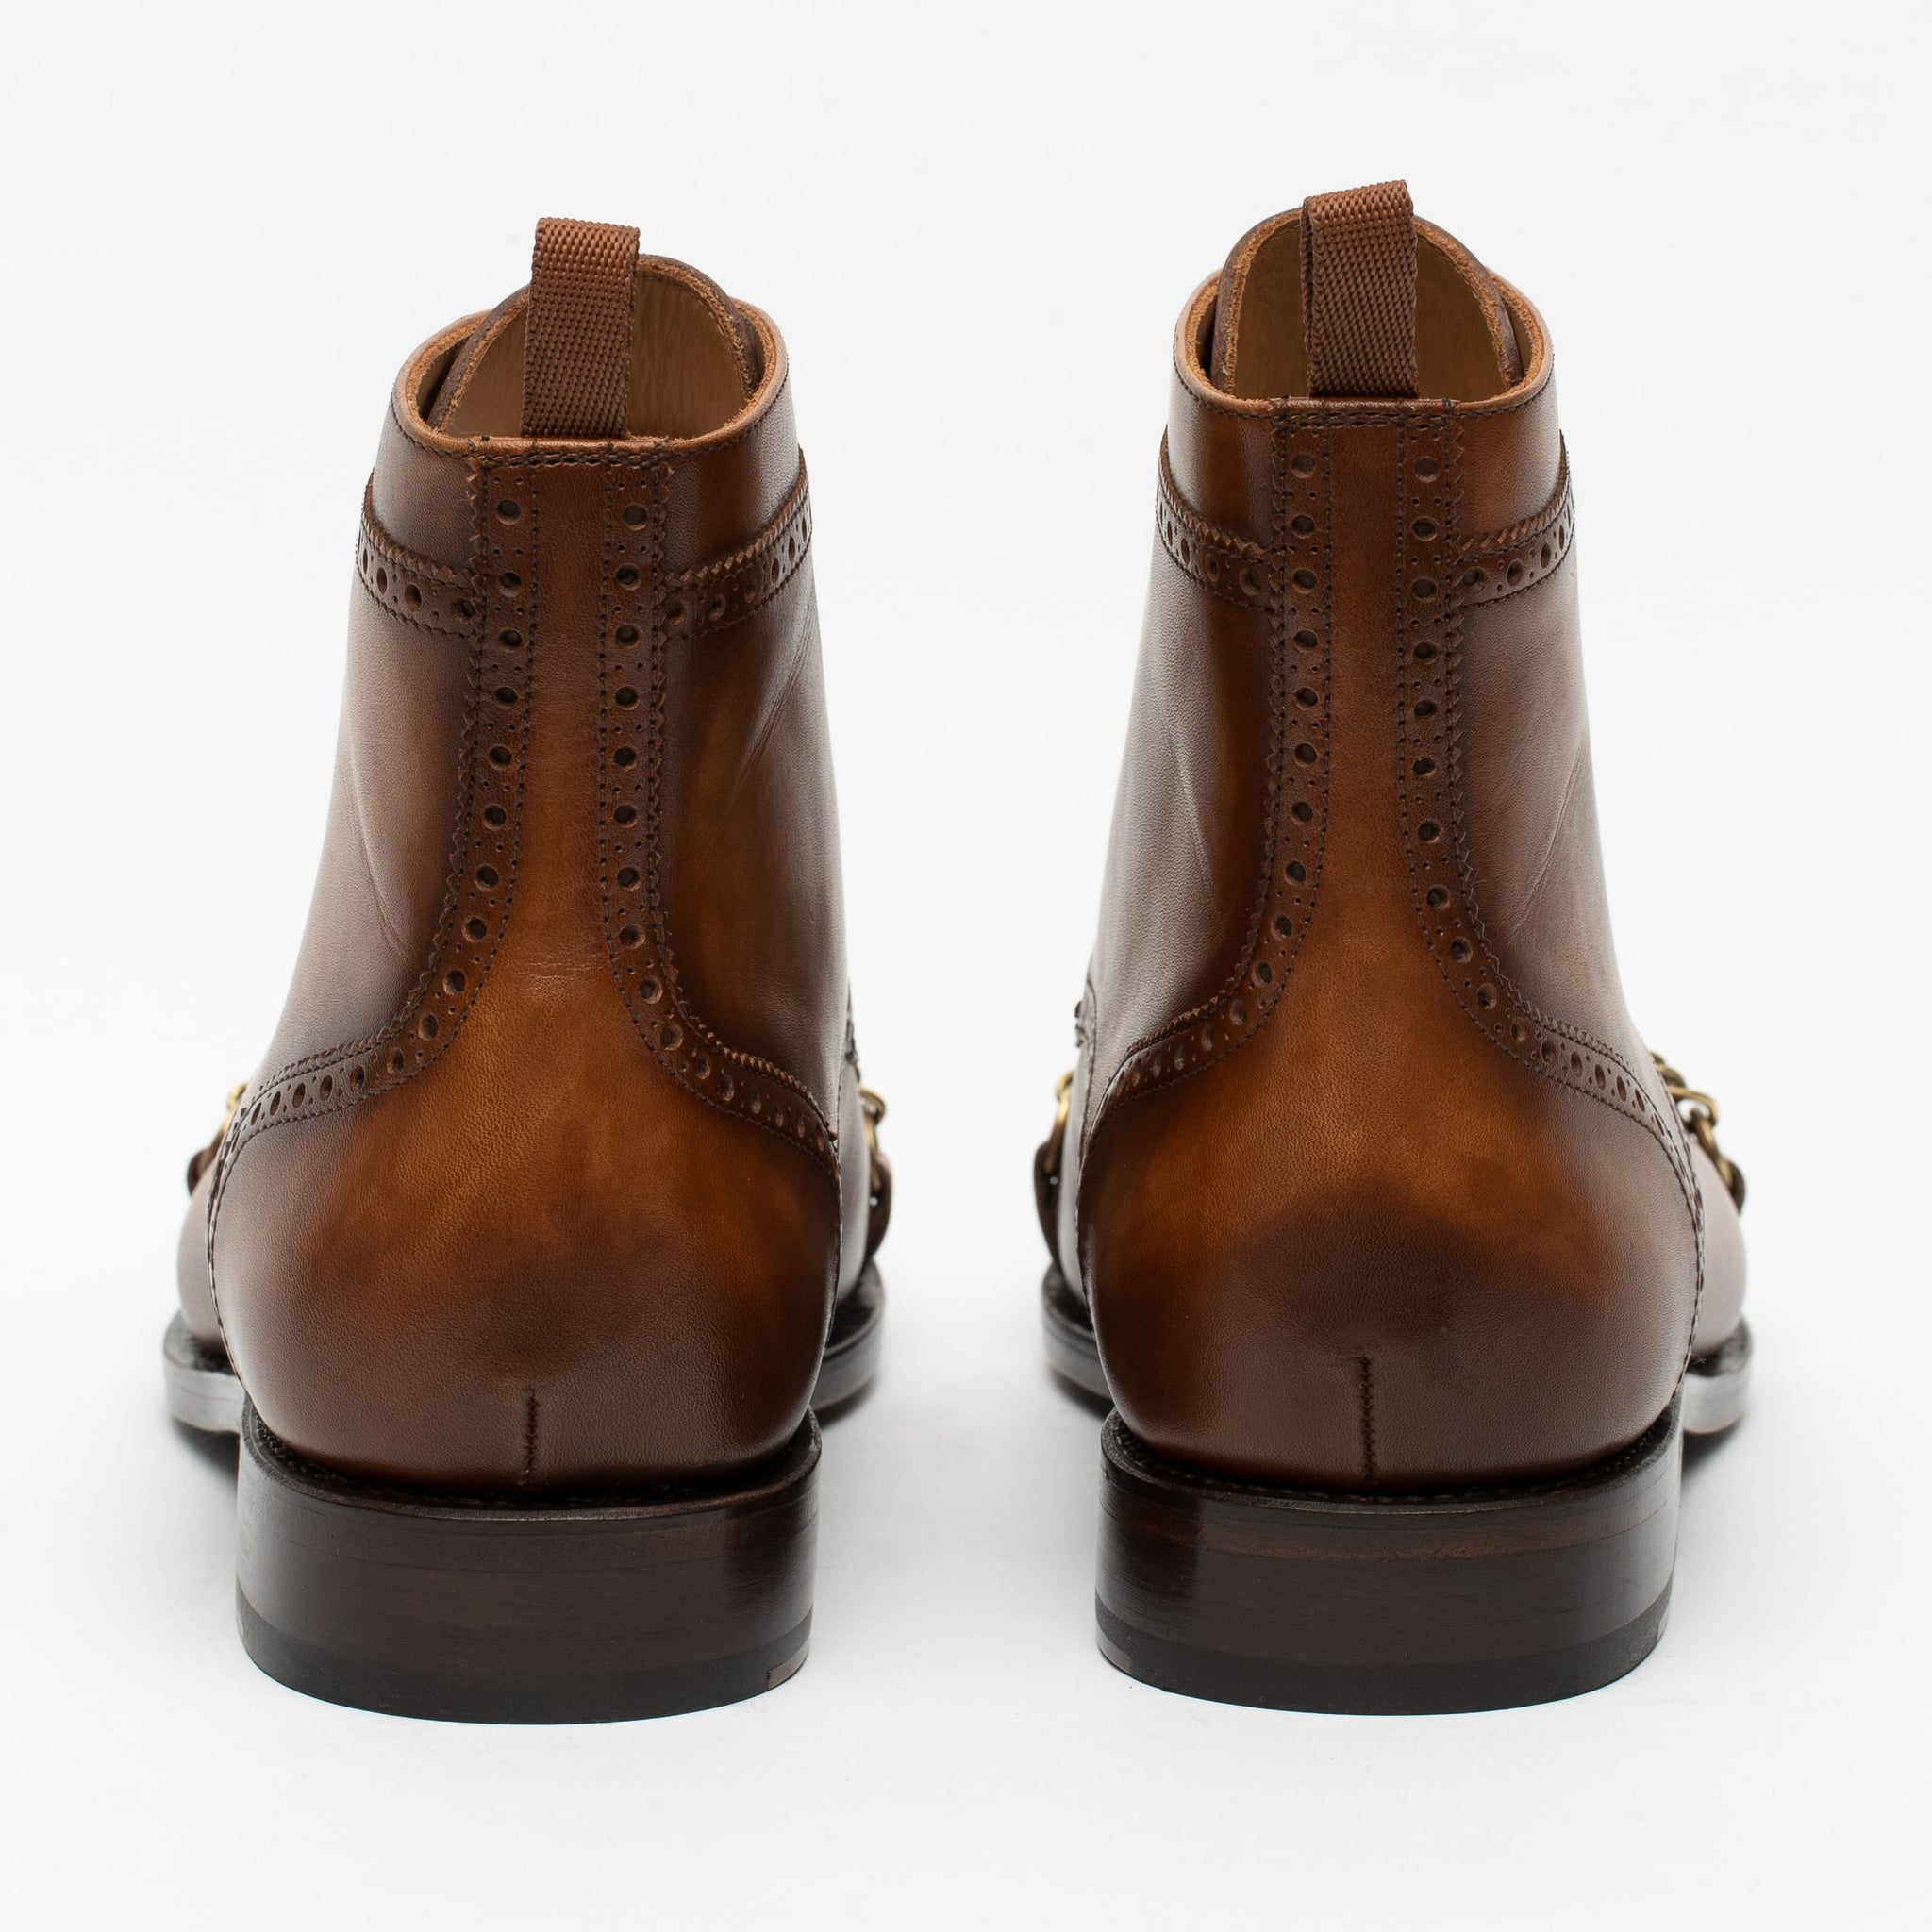 The Grail Boot in Coffee Back